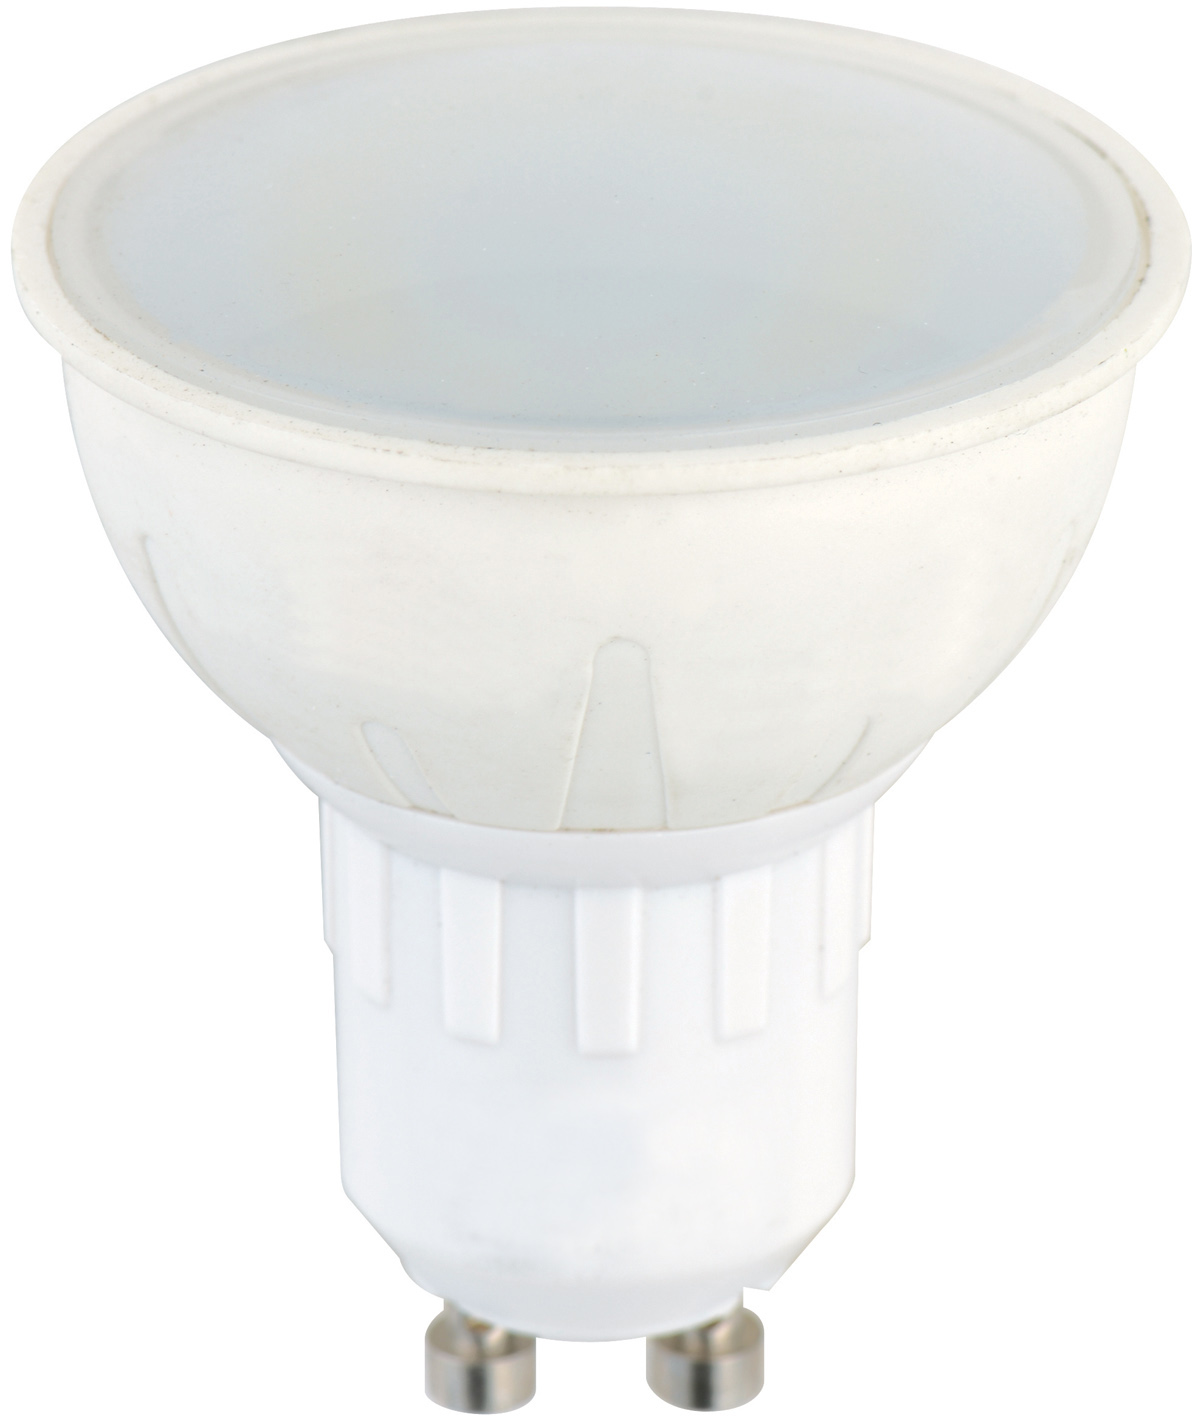 led spotlight GU10 6w TUV-GS, CE, RoHs